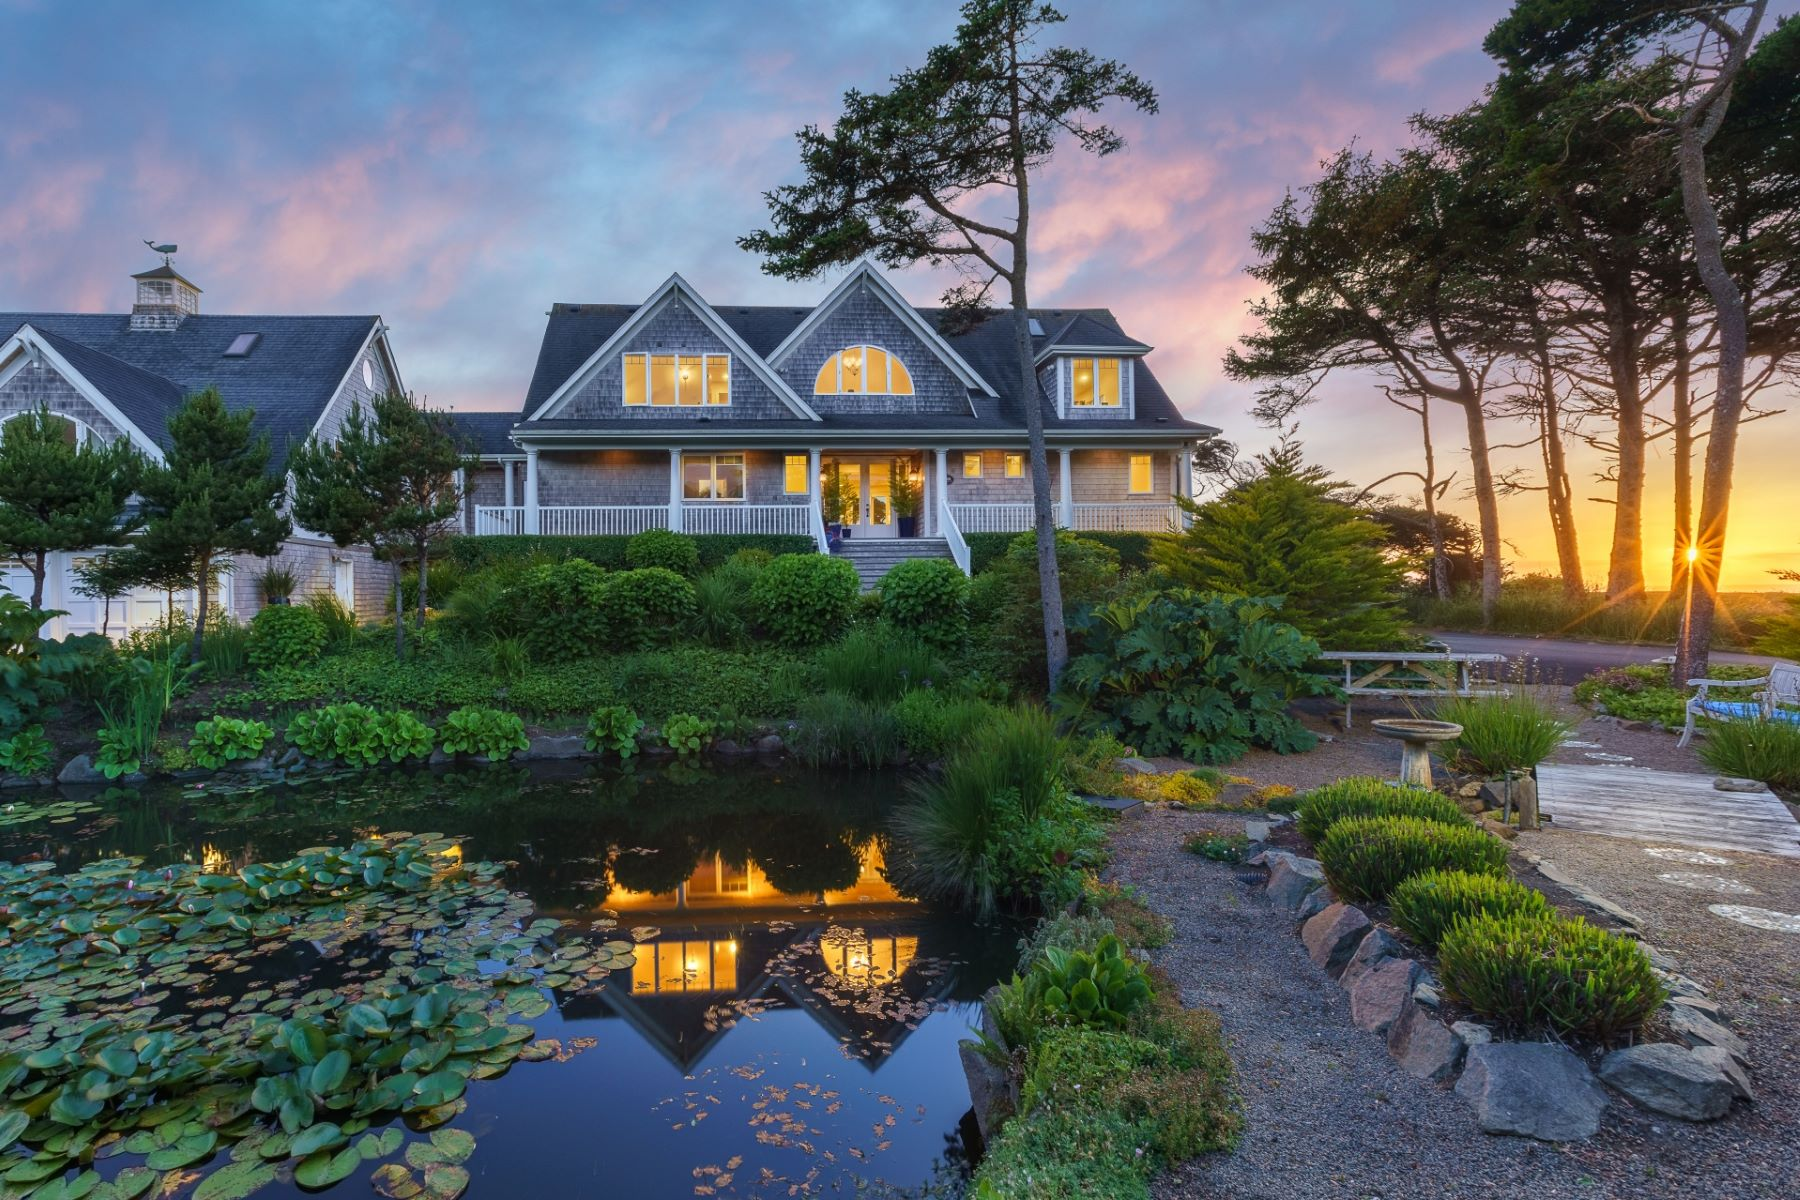 Single Family Homes for Active at Private Oceanfront Estate 5555 Kimball Ct Yachats, Oregon 97498 United States